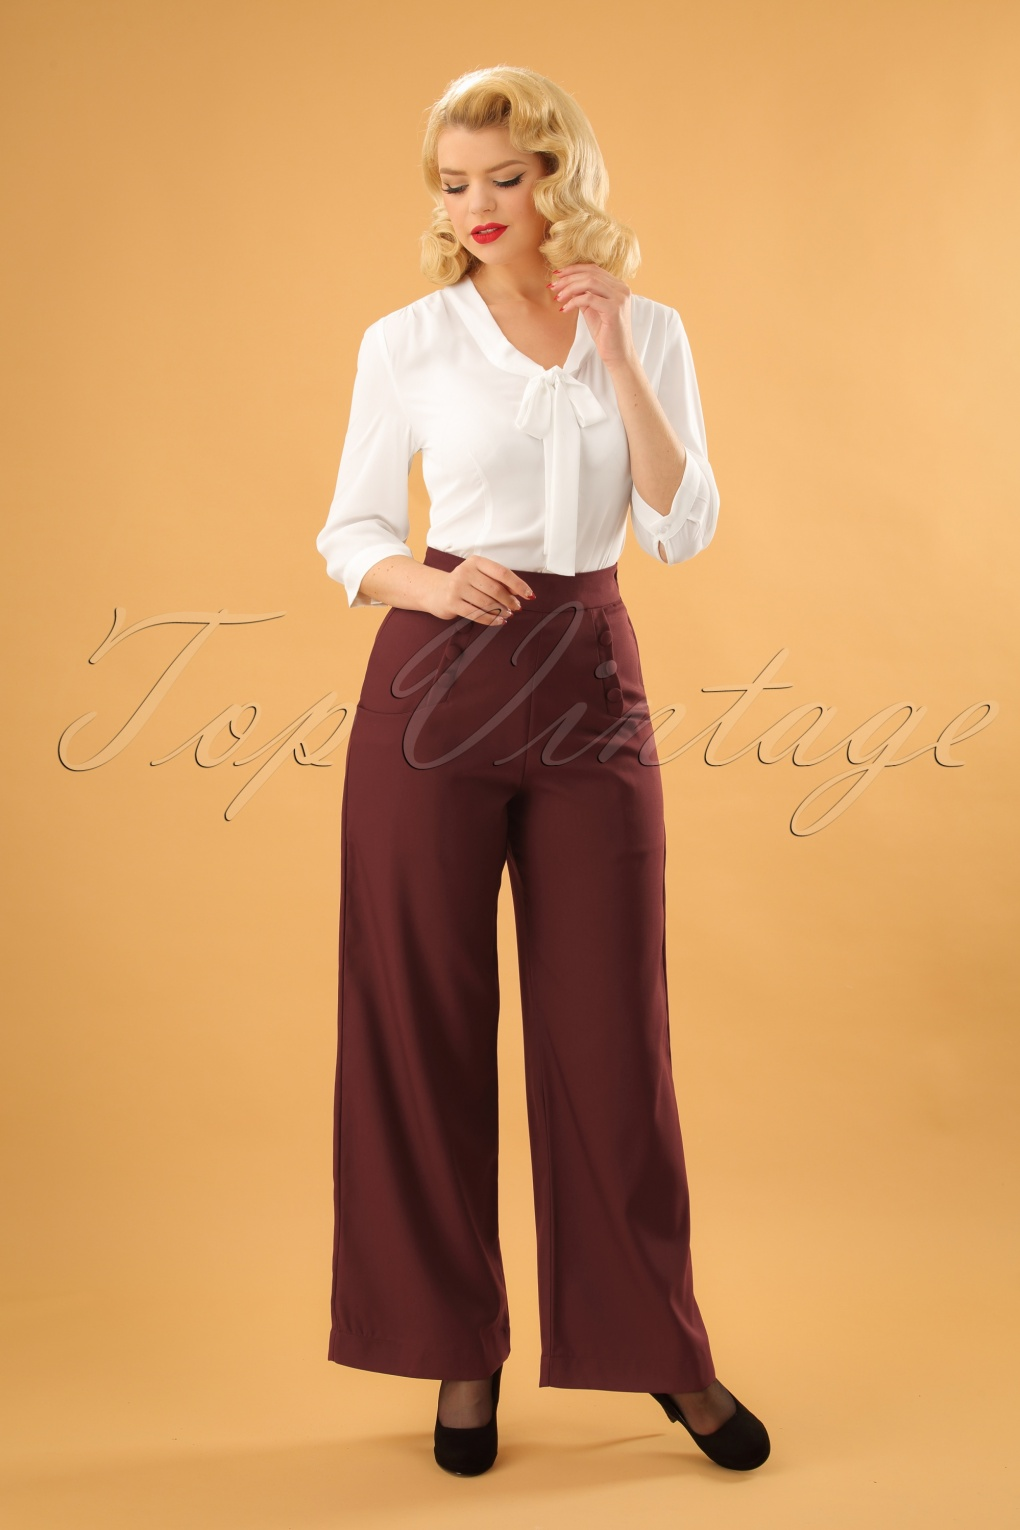 Vintage High Waisted Trousers, Sailor Pants, Jeans 40s Ginger Sailor Trousers in Burgundy £66.67 AT vintagedancer.com